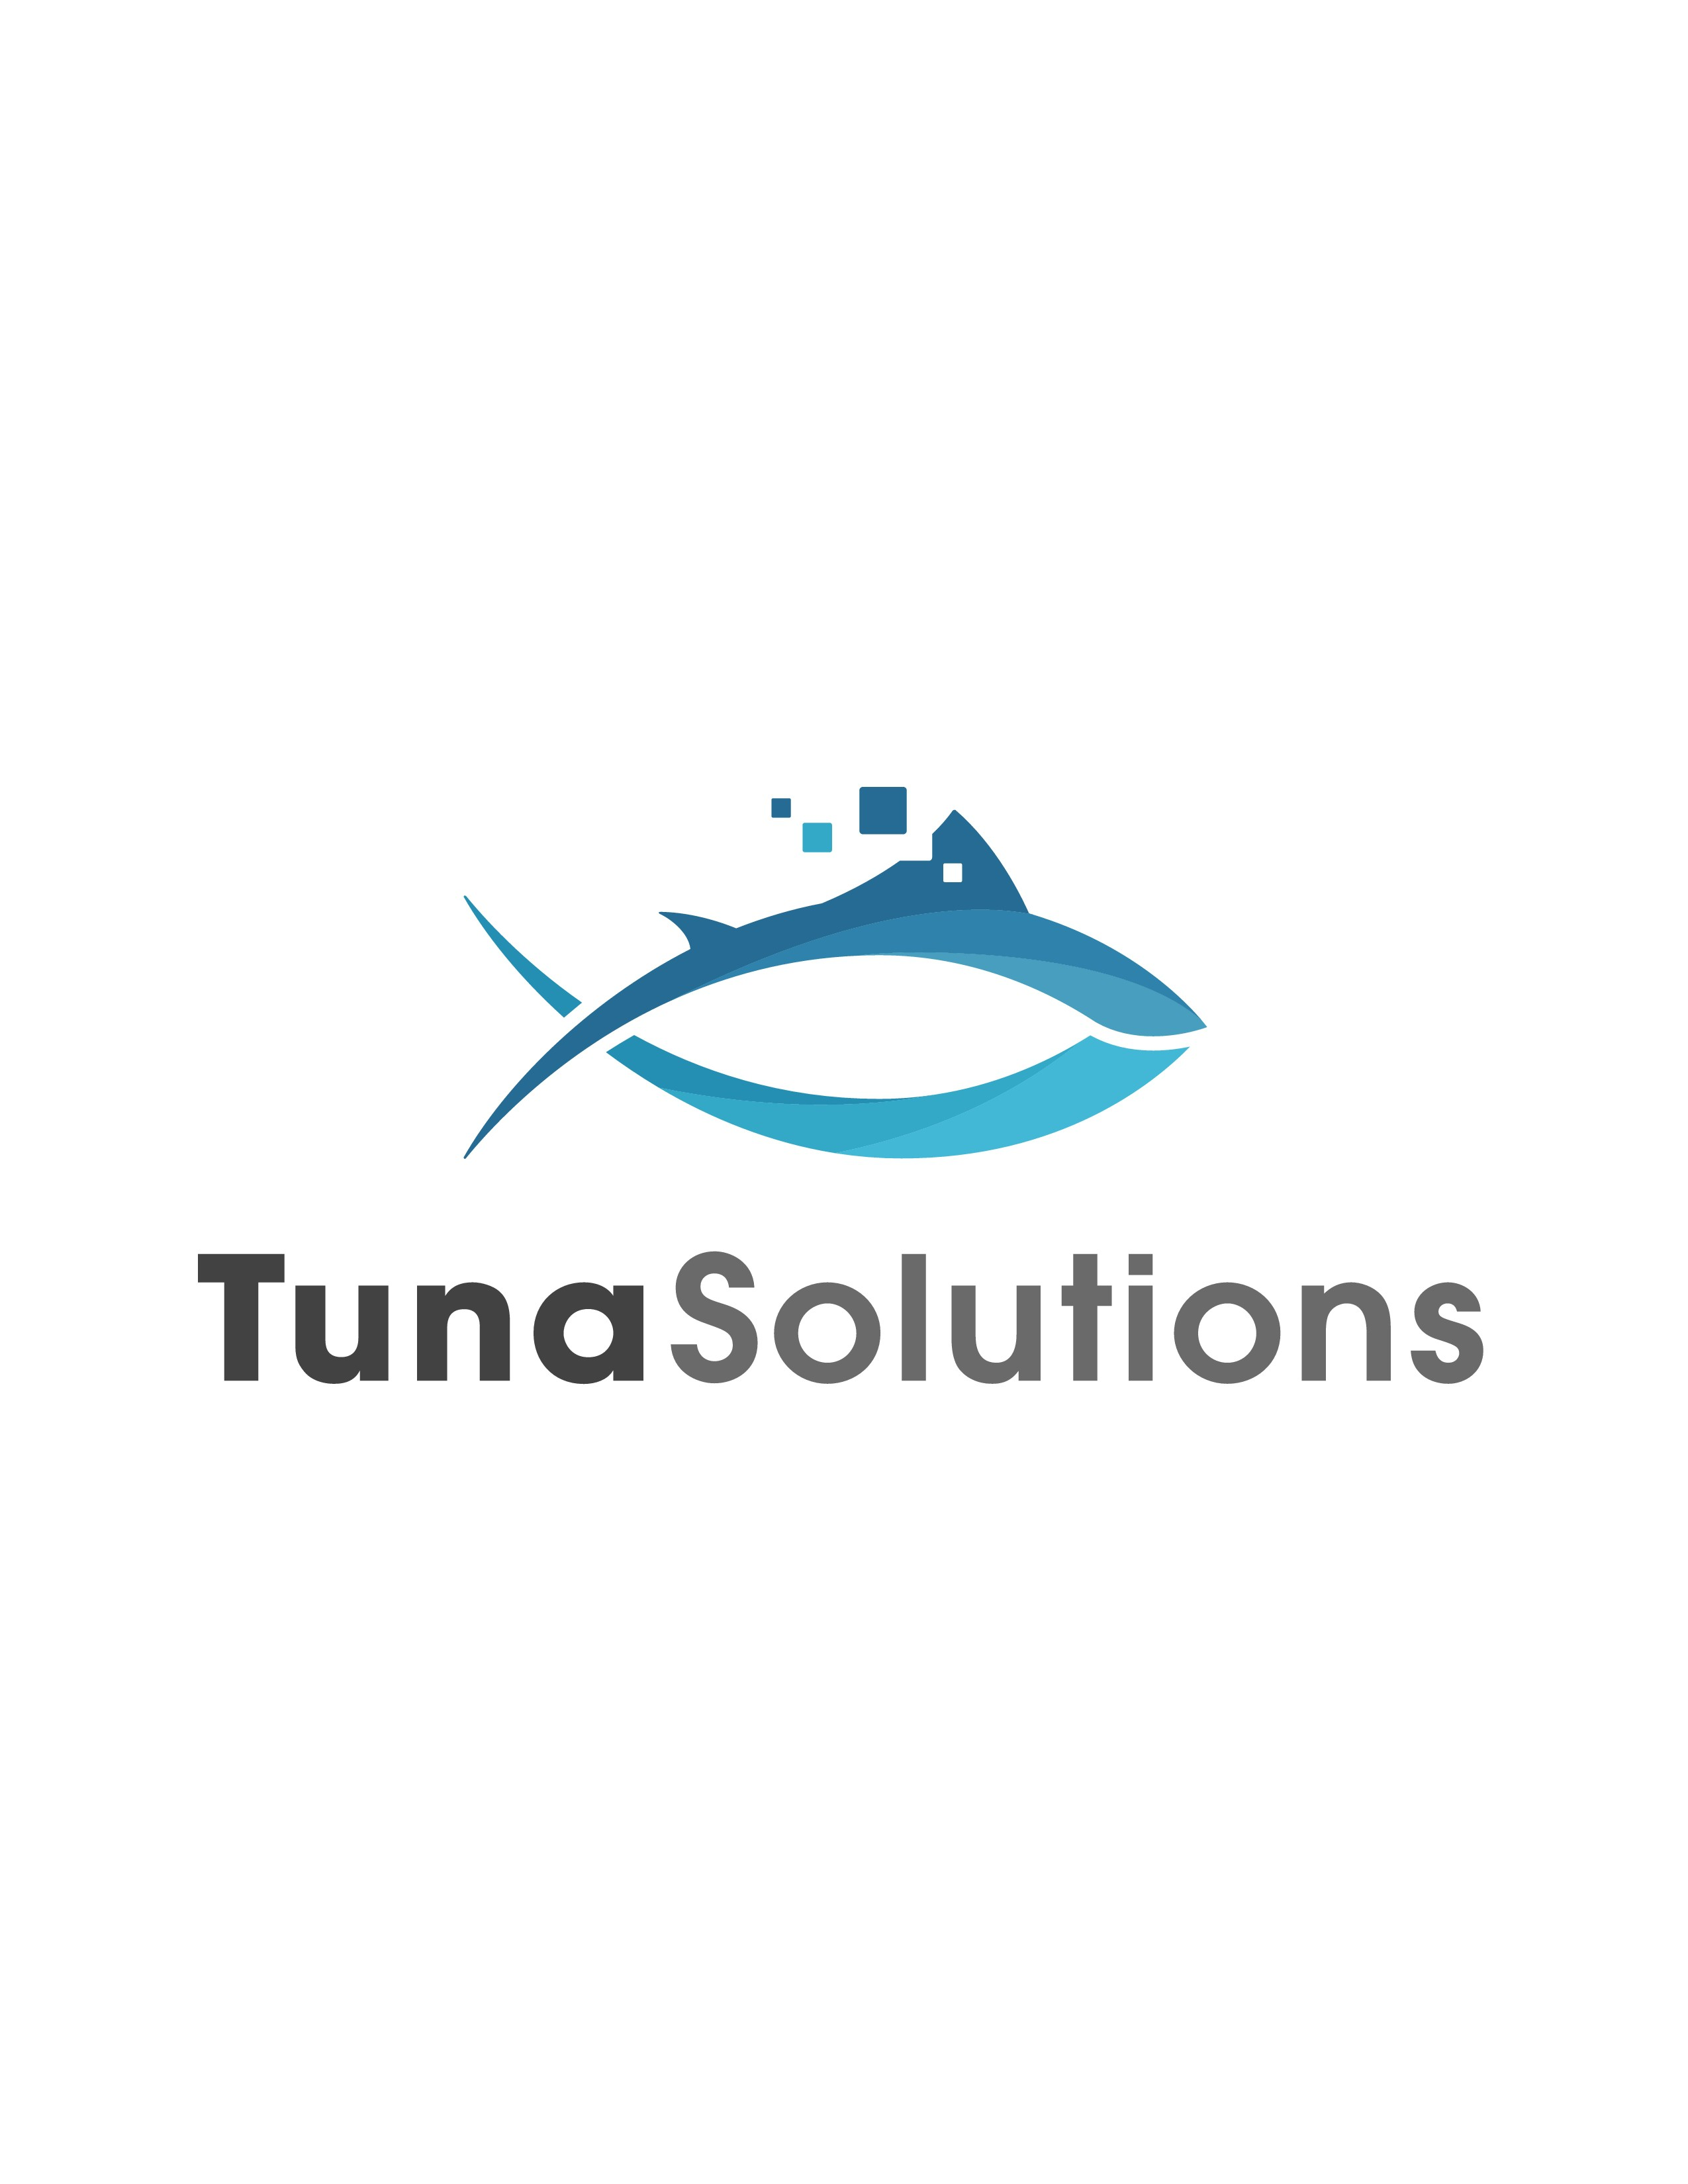 Create an iconic, trust worthy, new age logo for Tuna Solutions